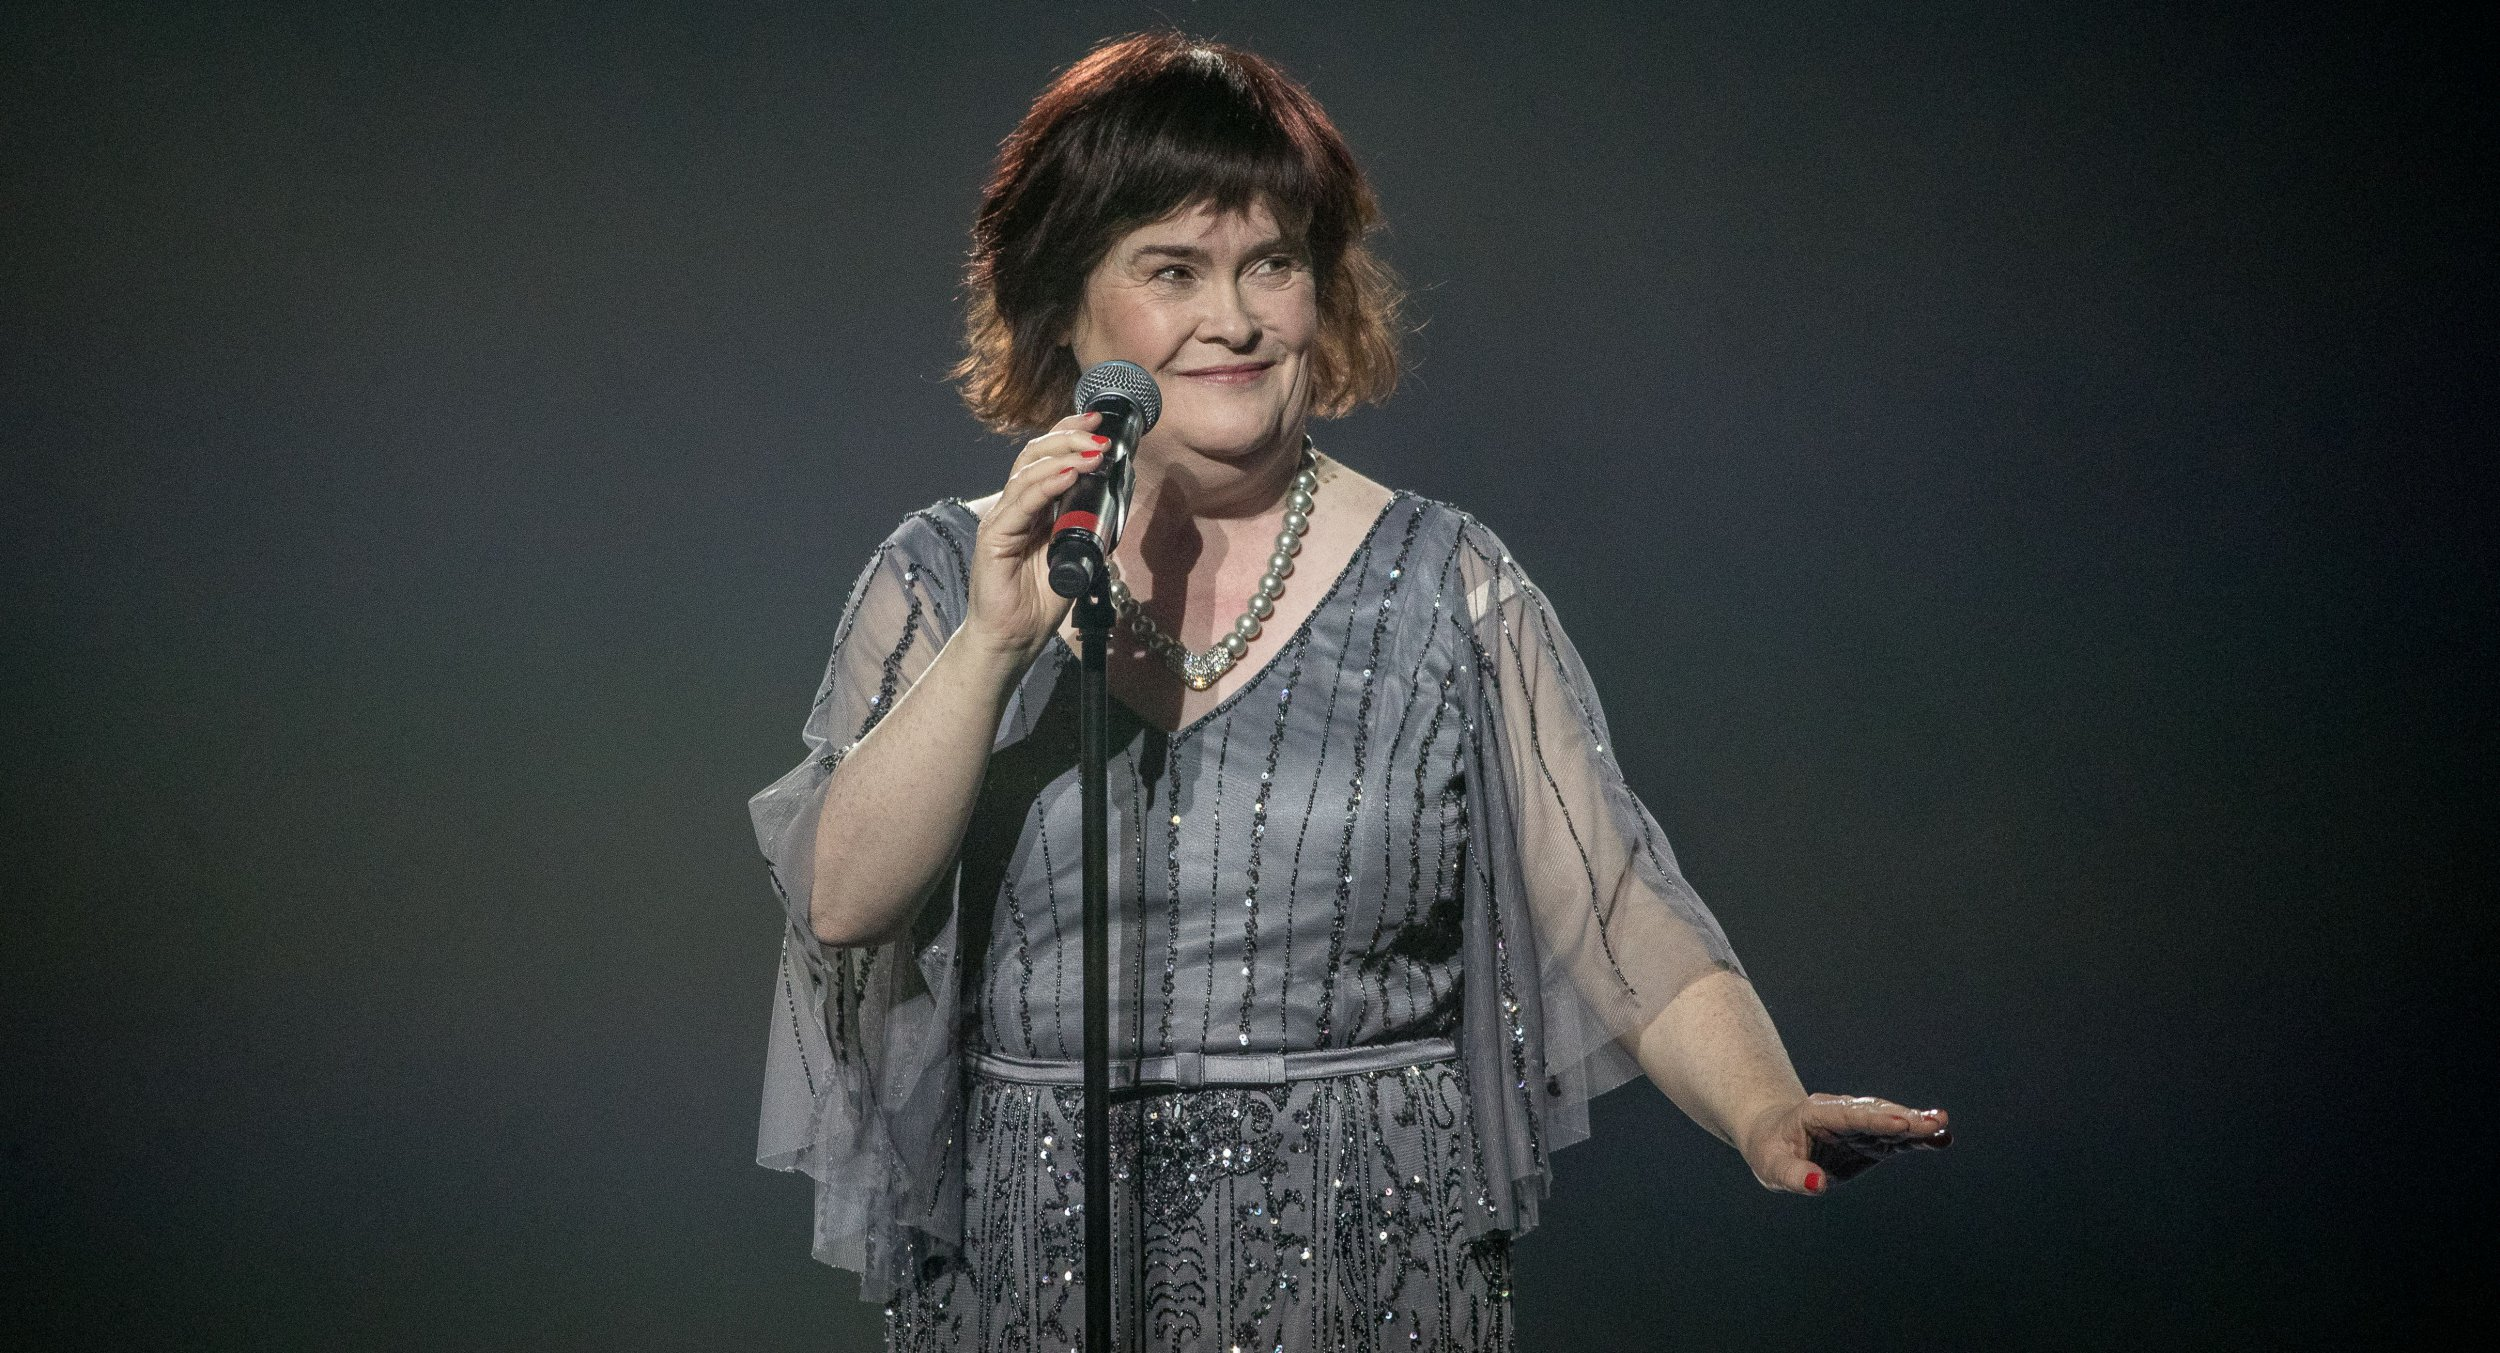 Susan Boyle praises 'wonder woman' mum as she honours her memory on Mother's Day